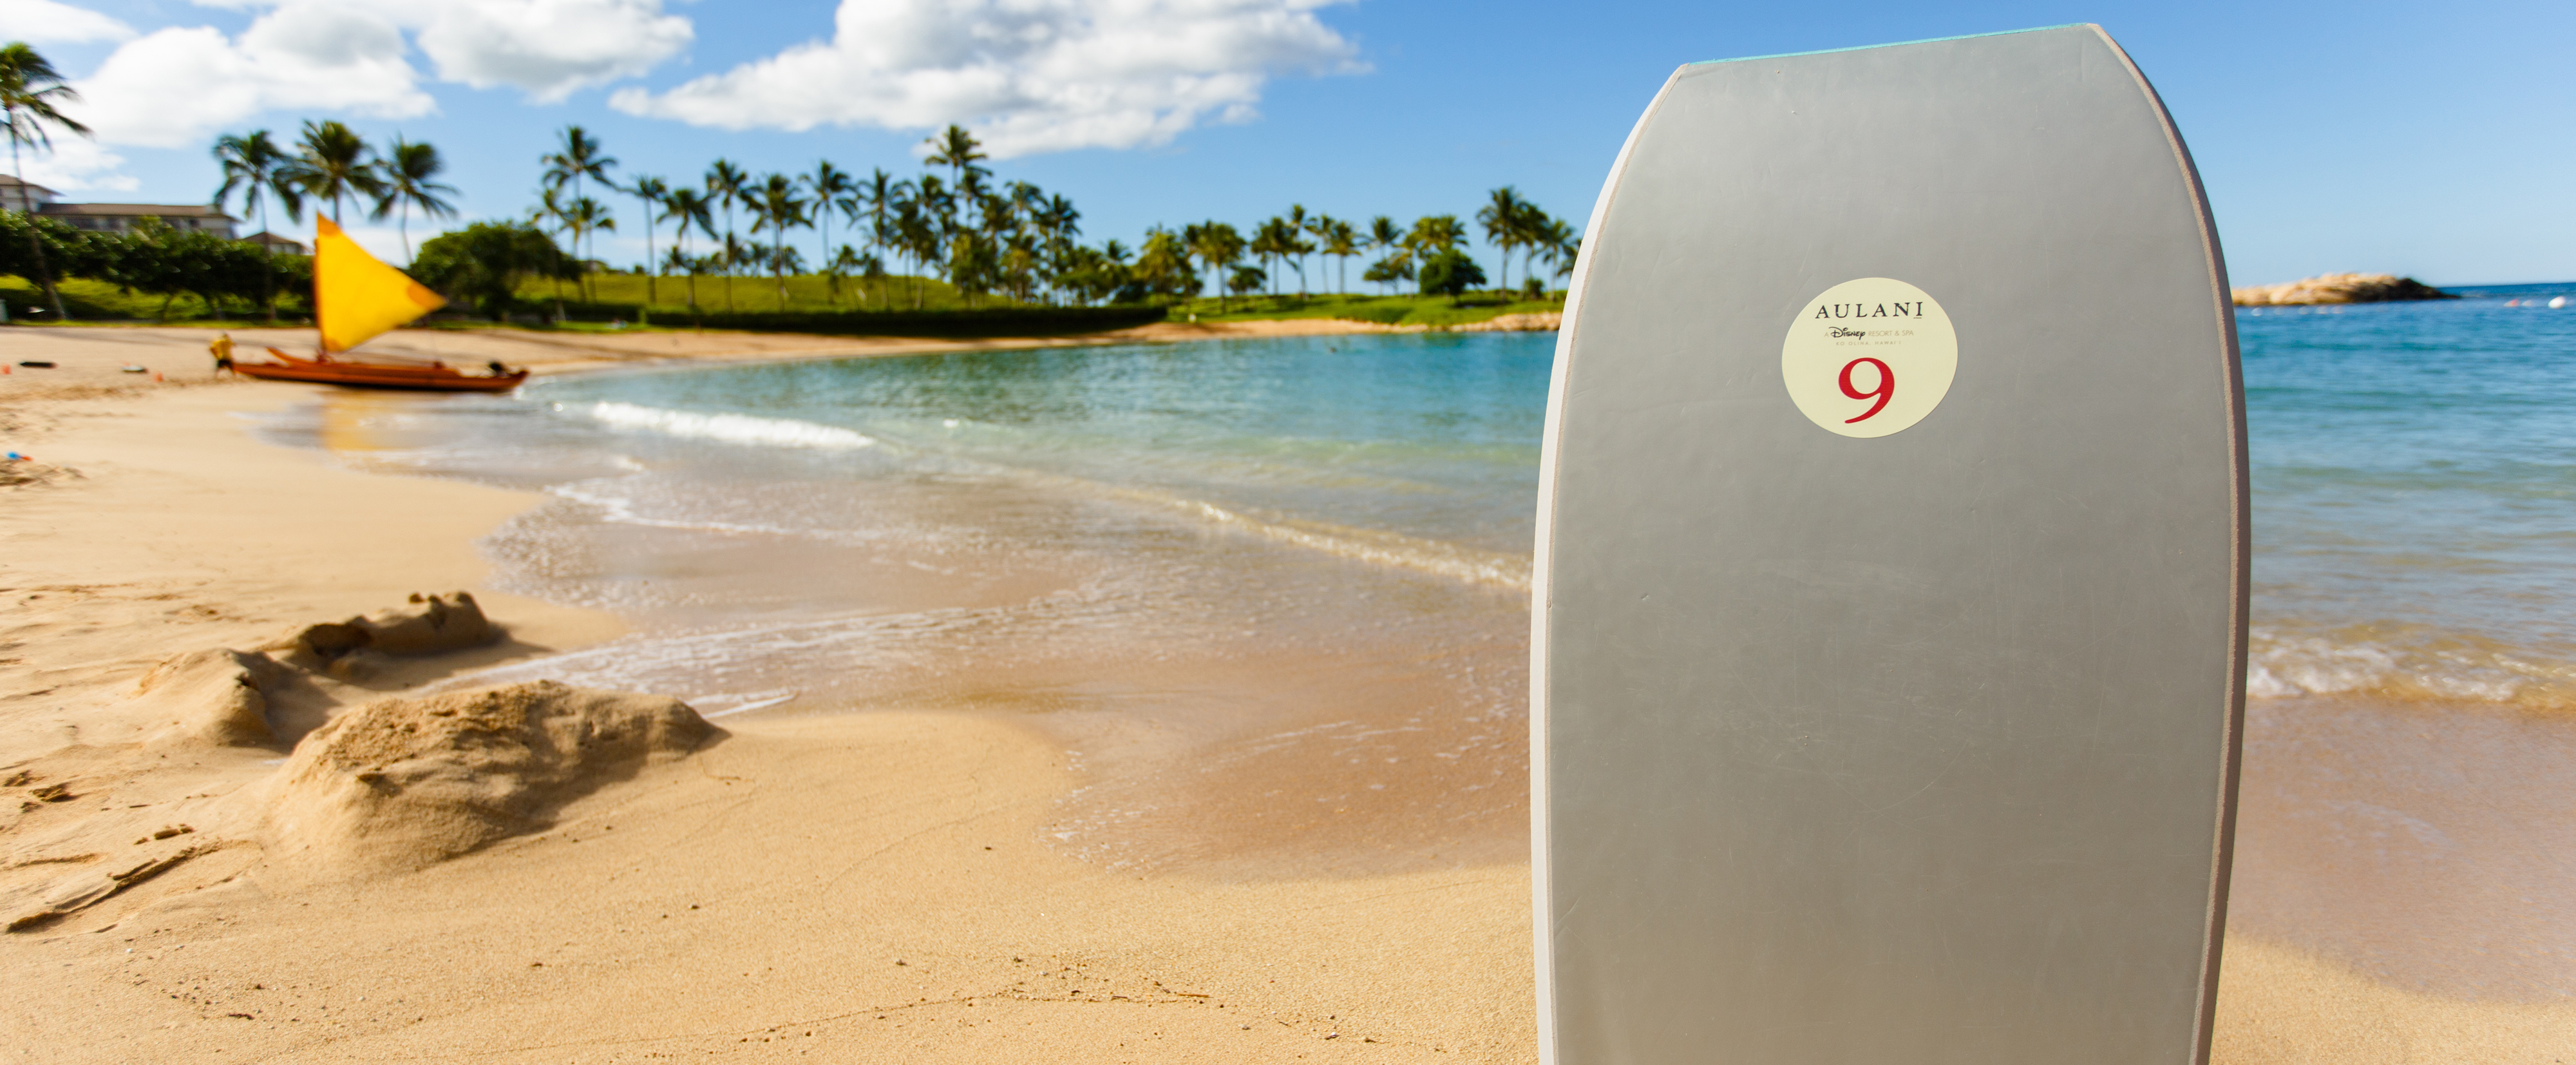 A boogie board stands upright in the sand on the shores of a tropical beach